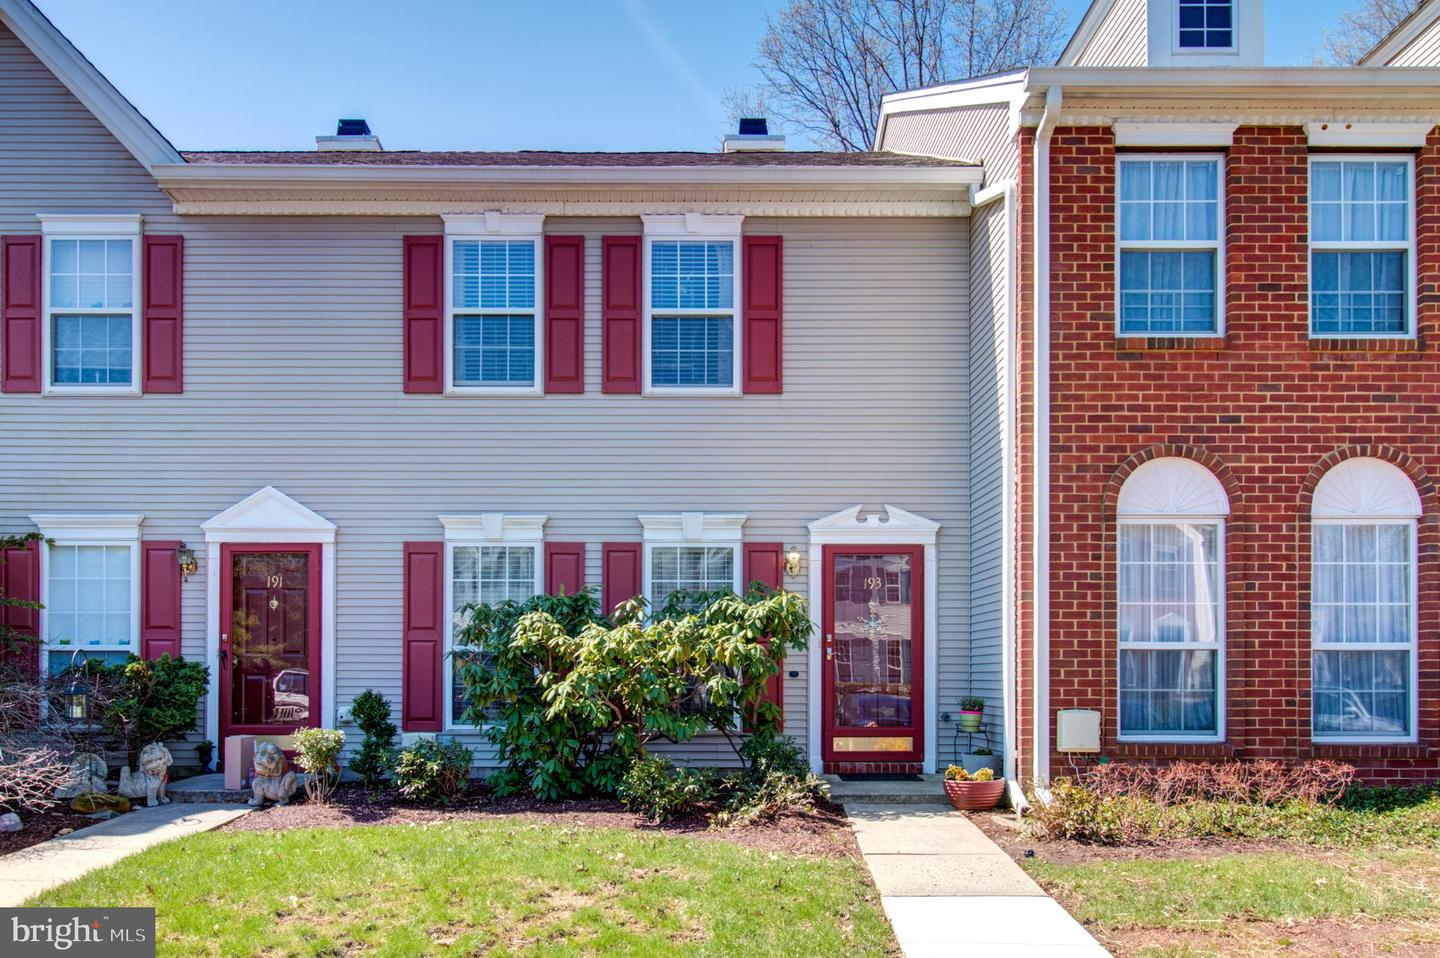 193 SHREWSBURY CT, PENNINGTON, NJ 08534